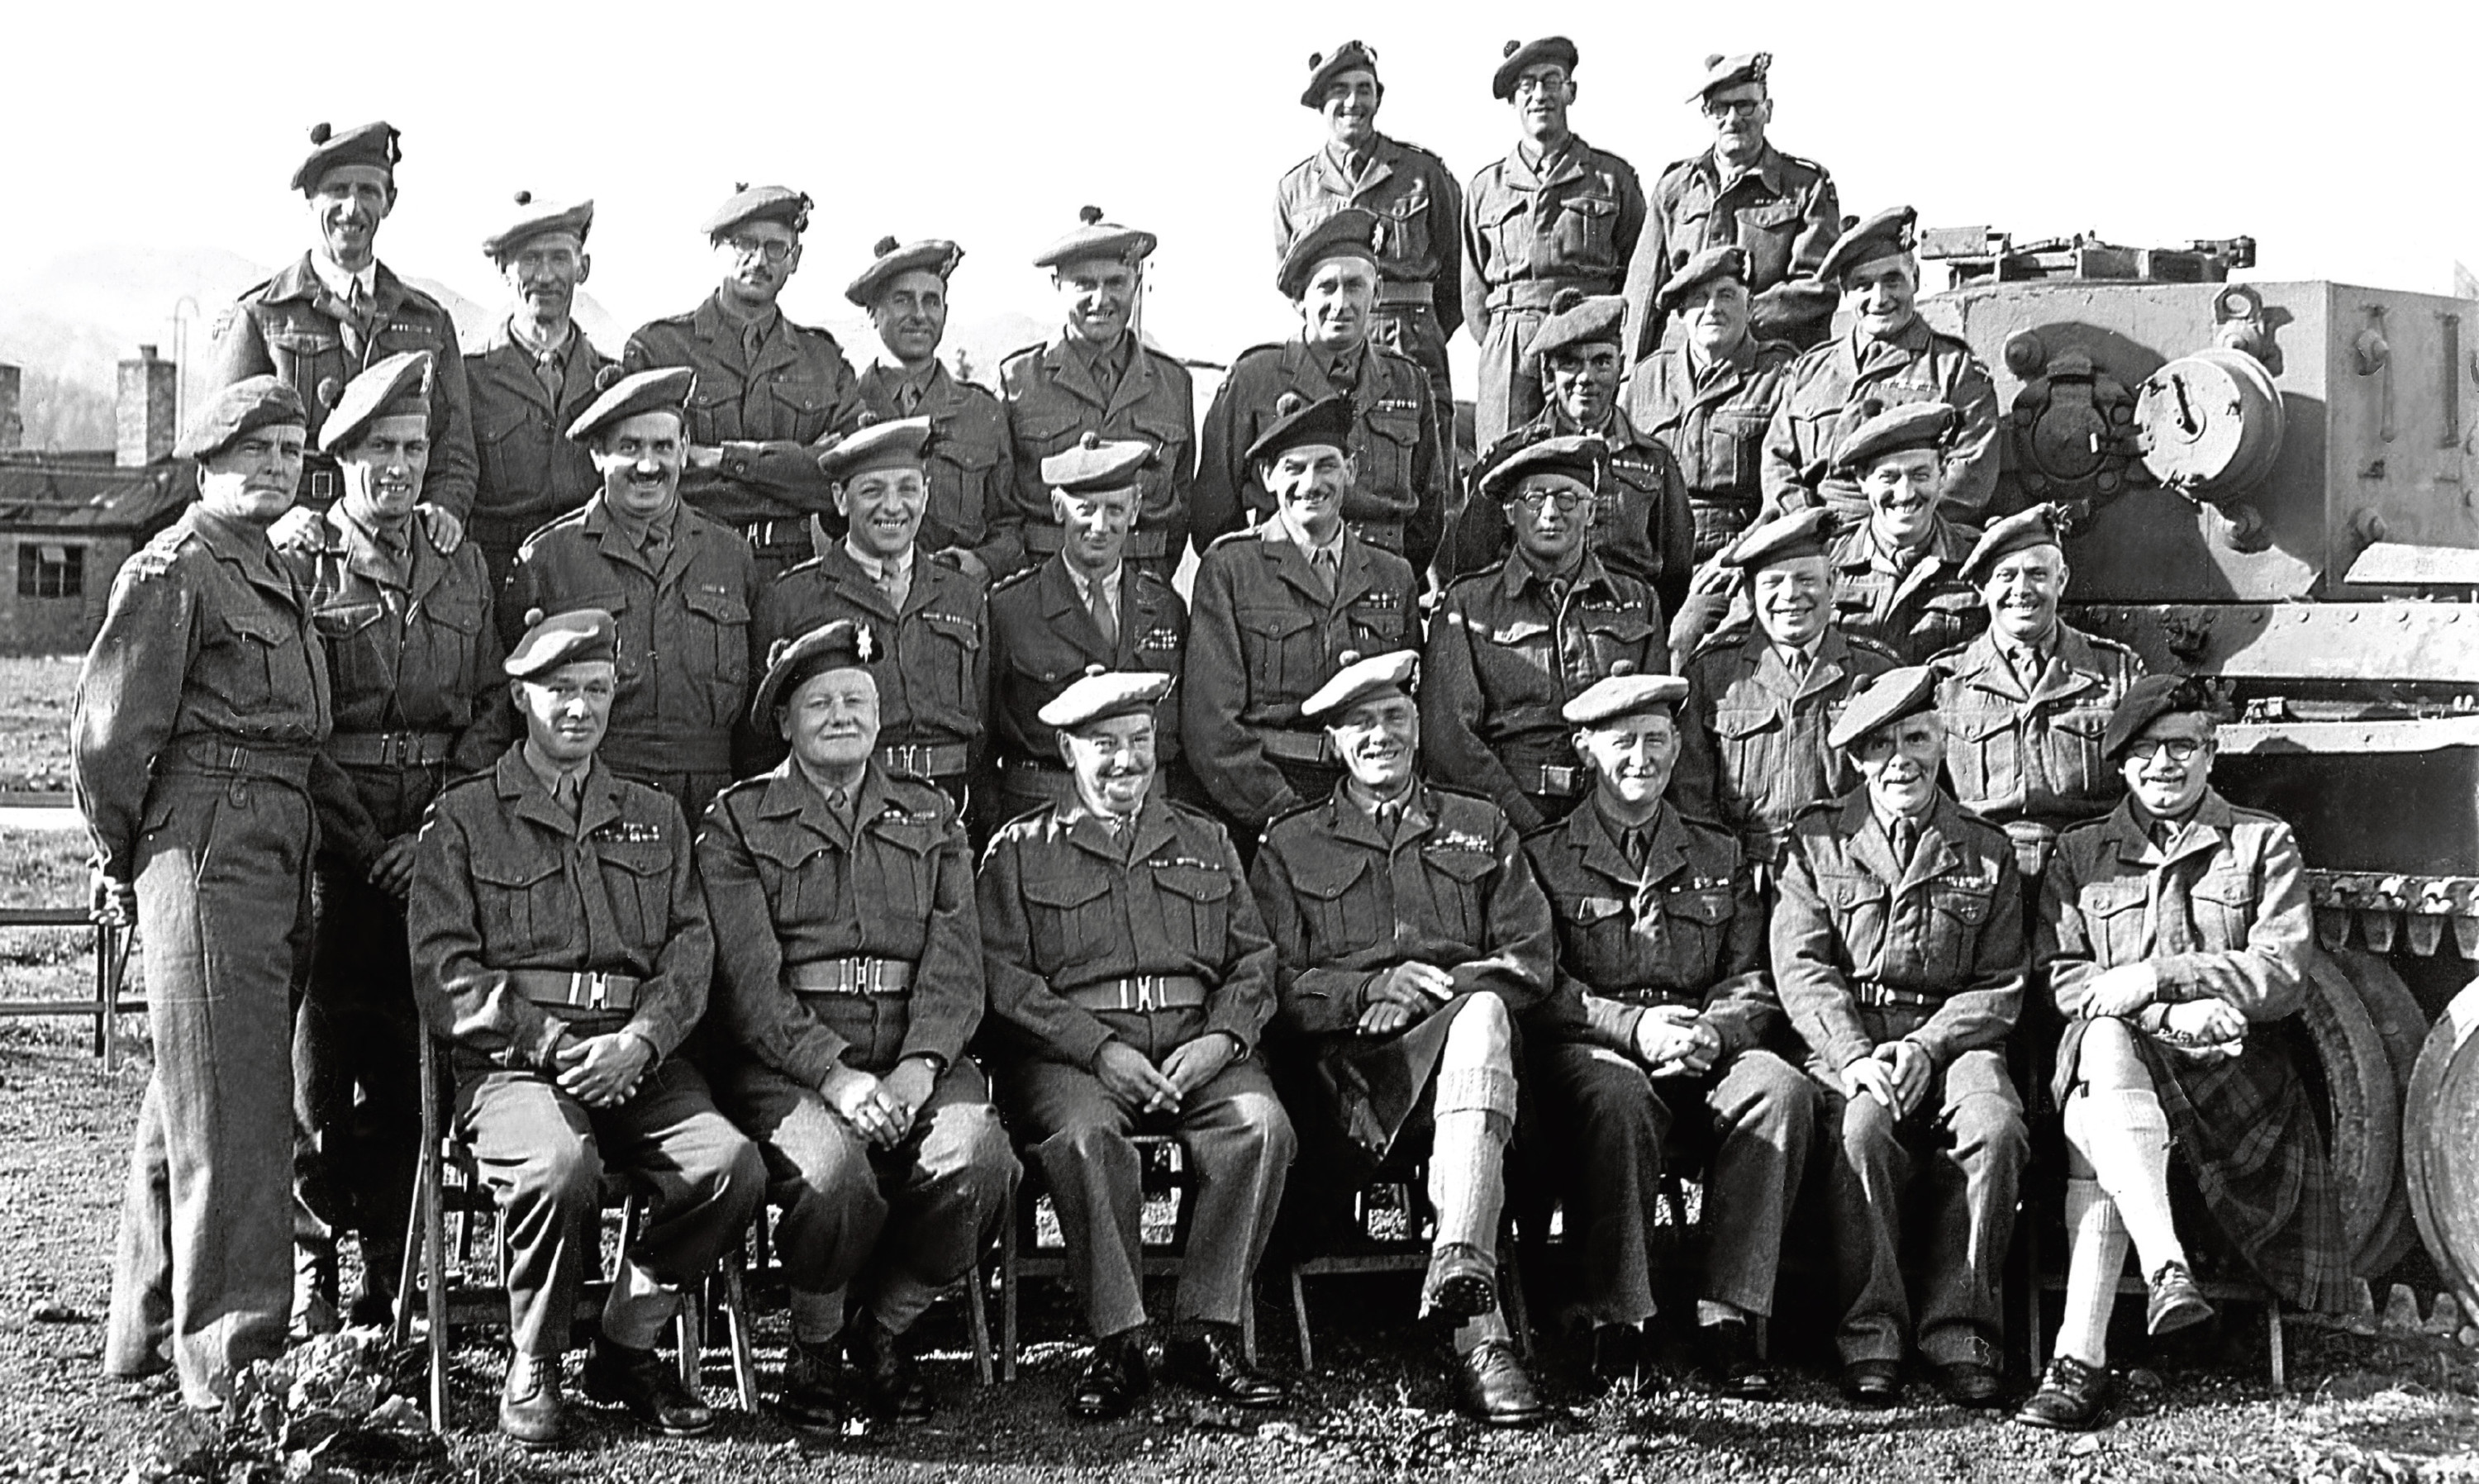 Angus Whitson's father Tom, bottom right, front row, in what became his familiar form of dress - a kilt.